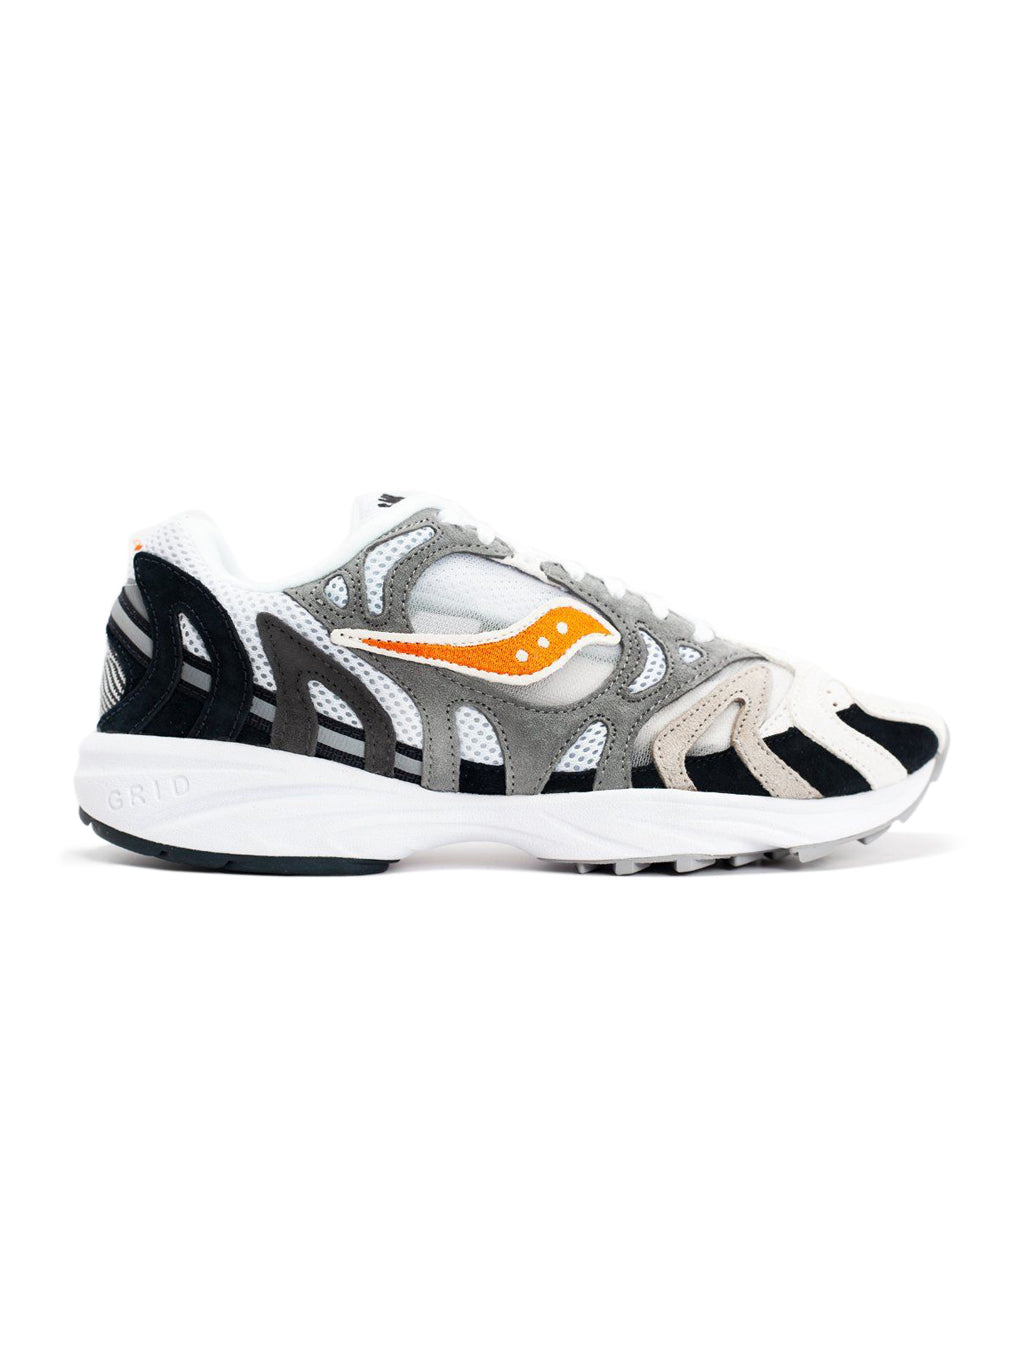 White & Black Grid Azura 2000 Sneakers